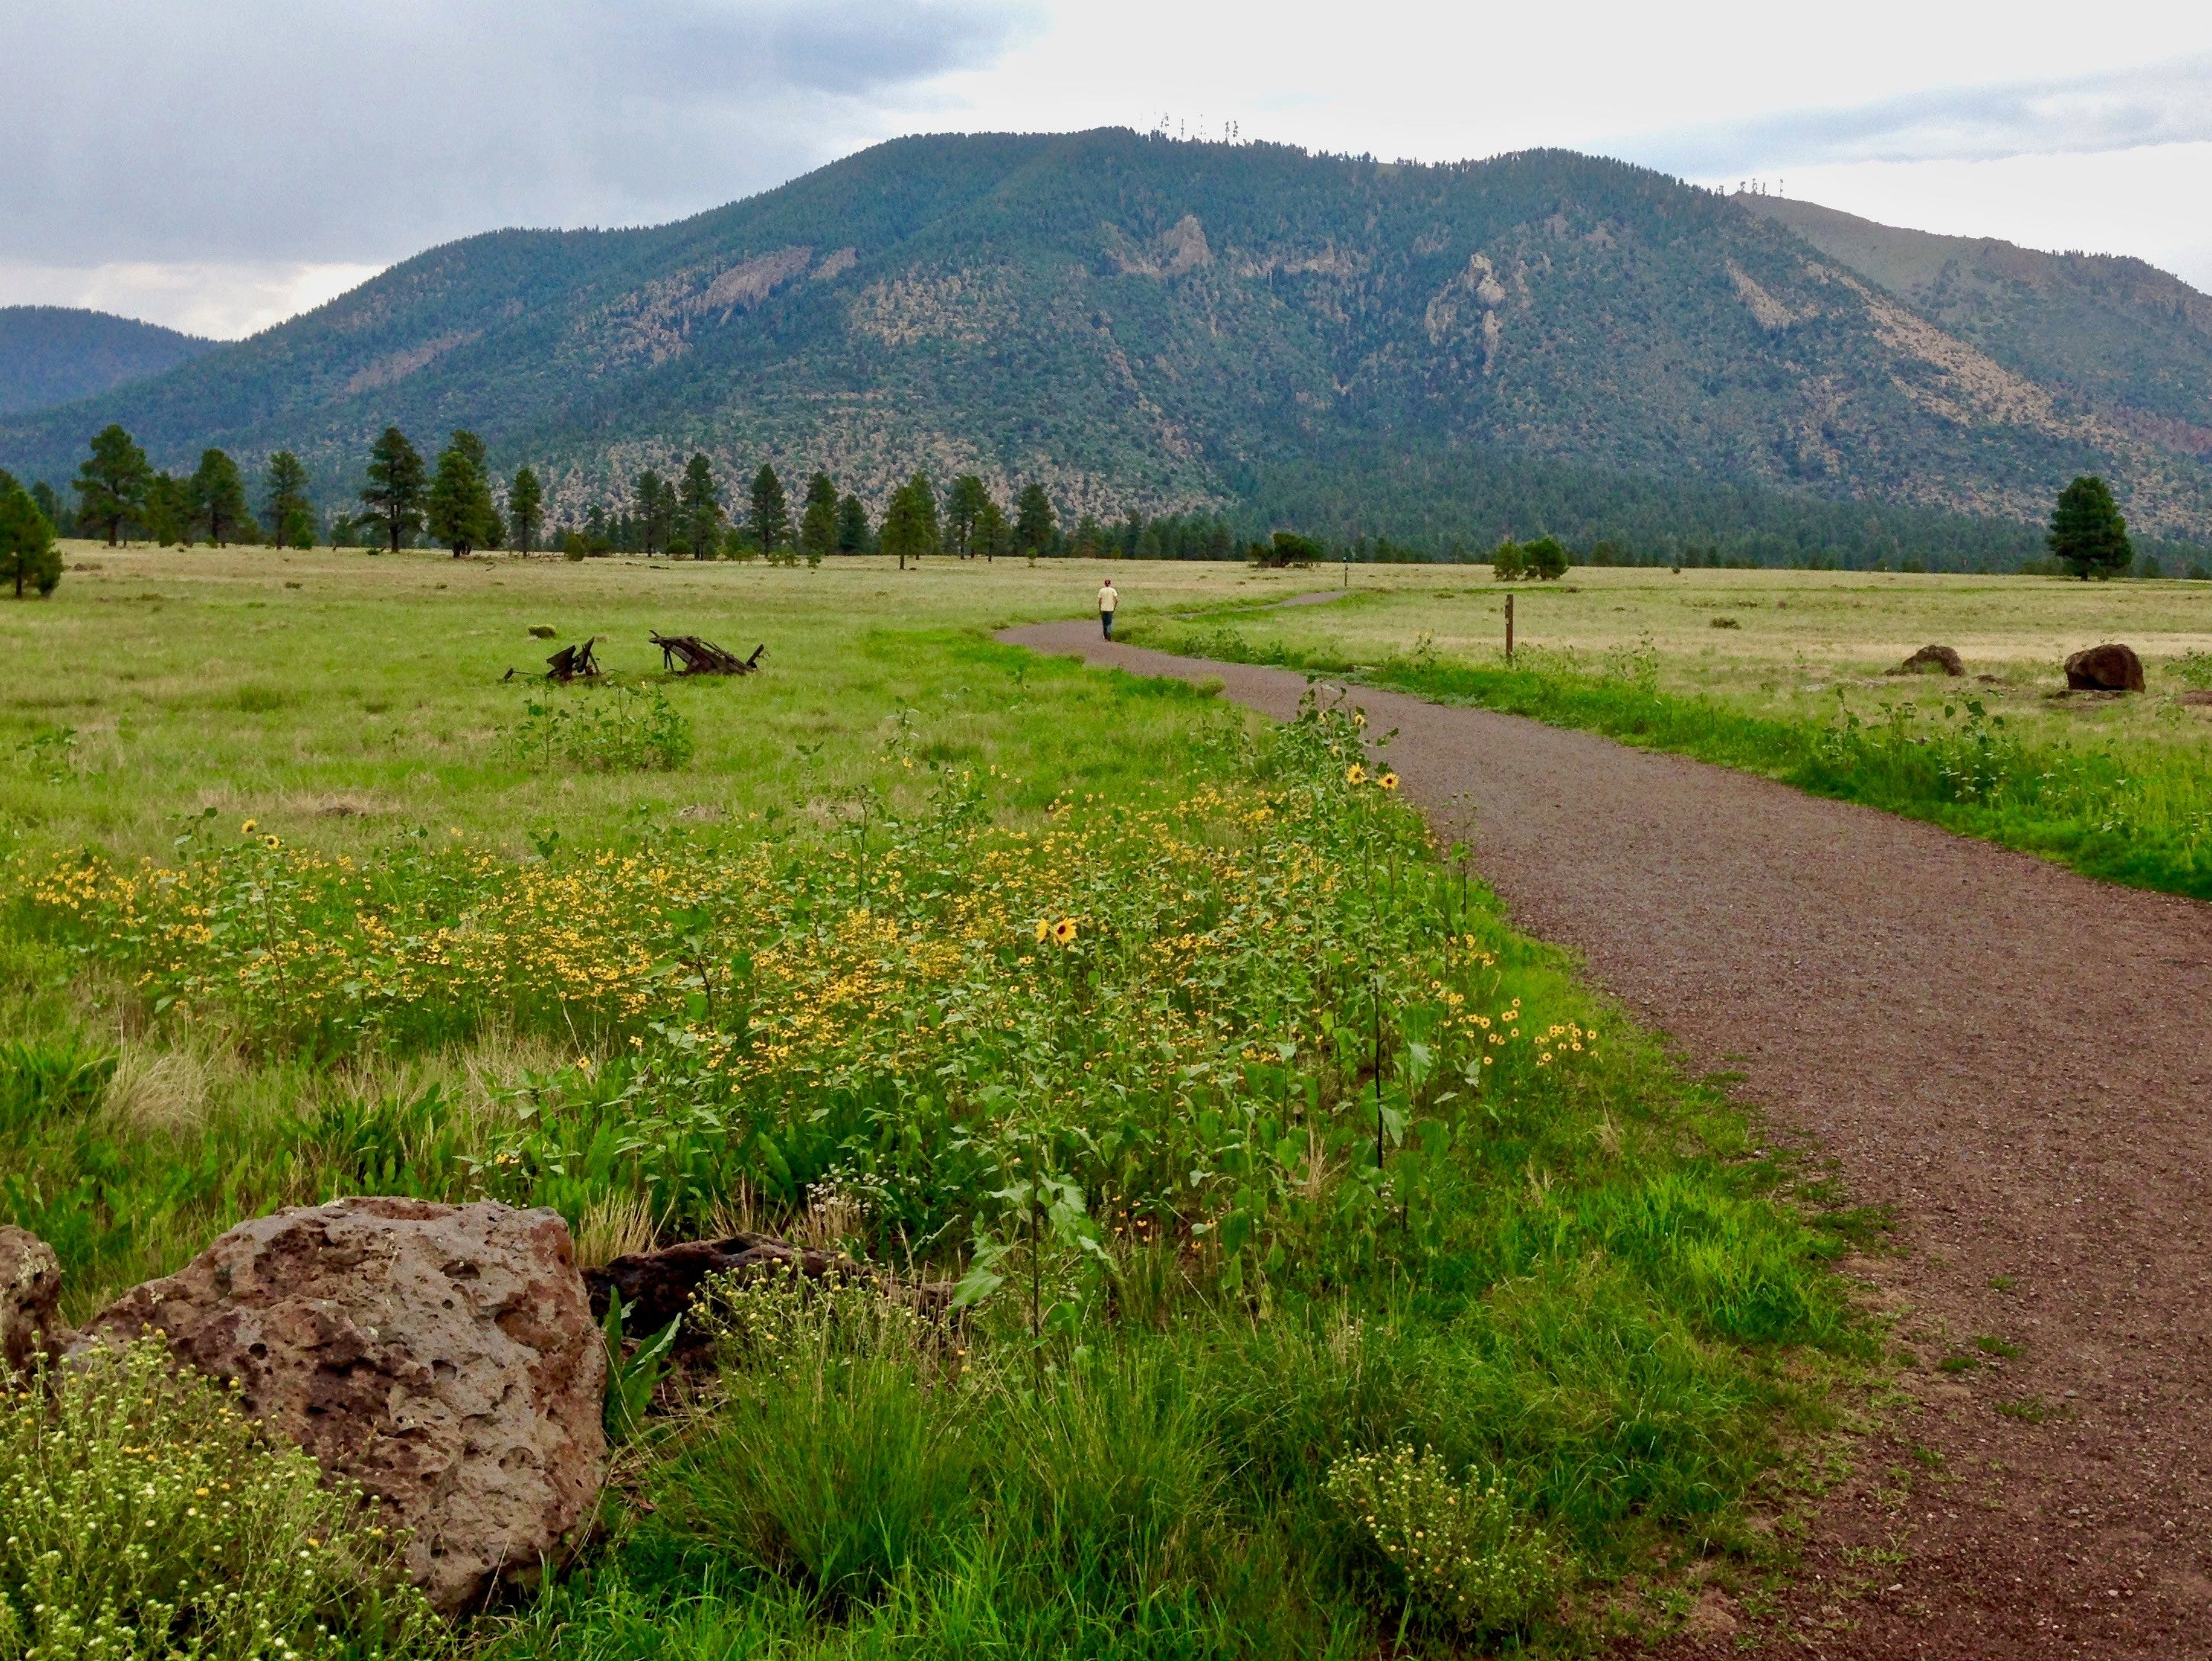 A segment of the Arizona Trail makes a gentle meander through the meadows of Buffalo Park, not far from downtown Flagstaff.